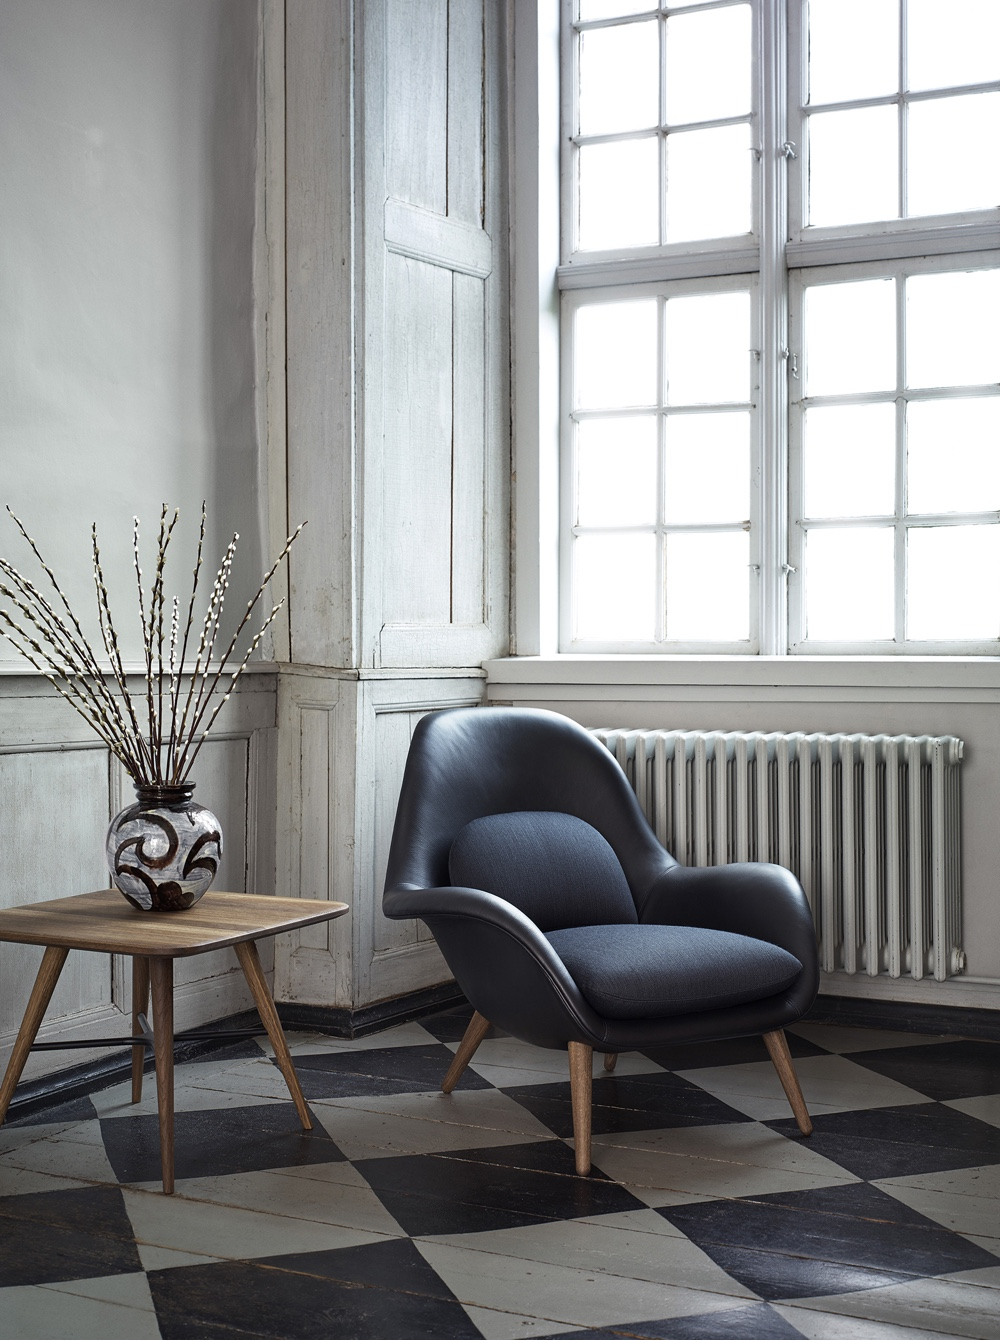 Swoon designed by Space Copenhagen for Fredericia.